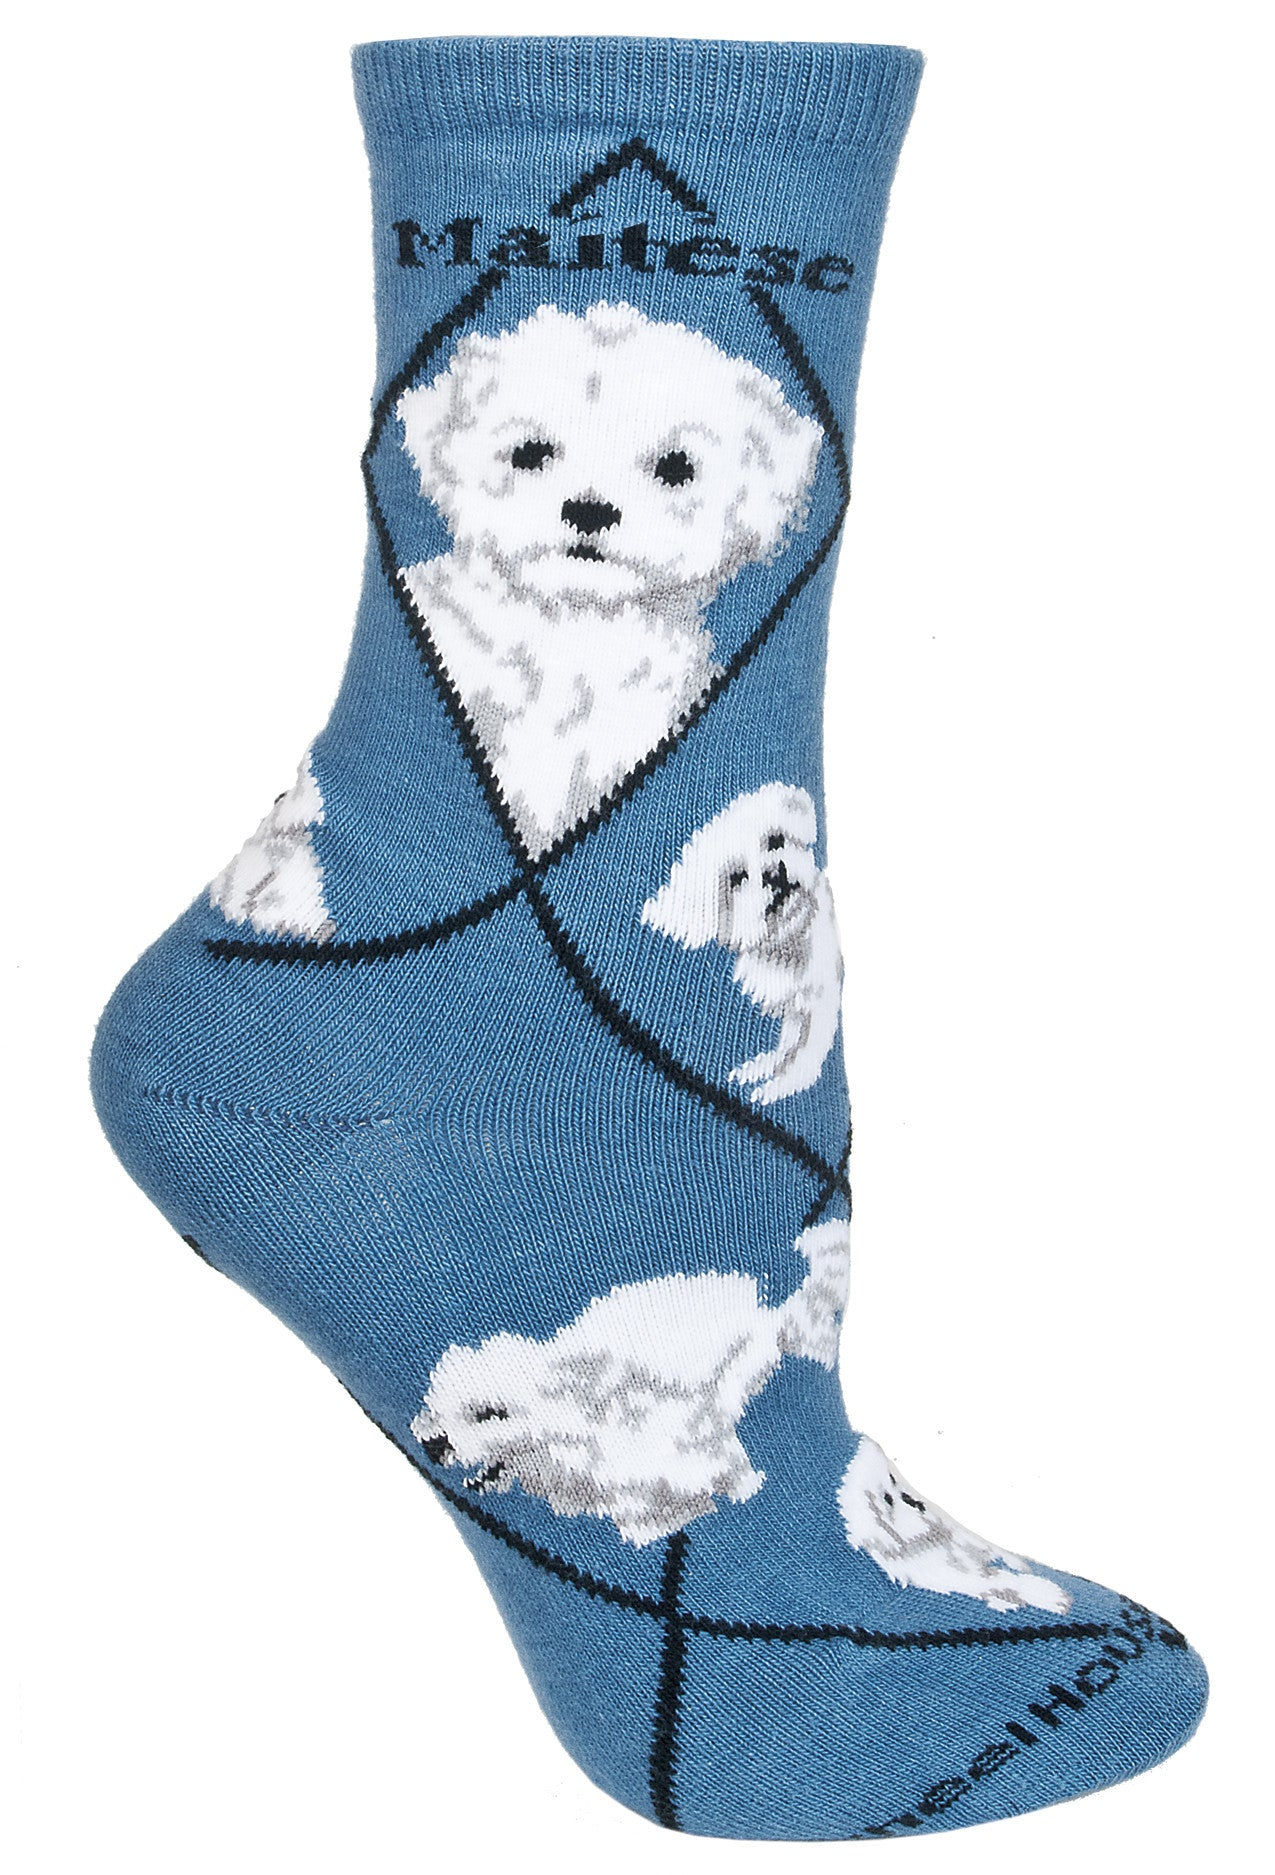 Maltese, Puppy Cut Crew Socks on Blue